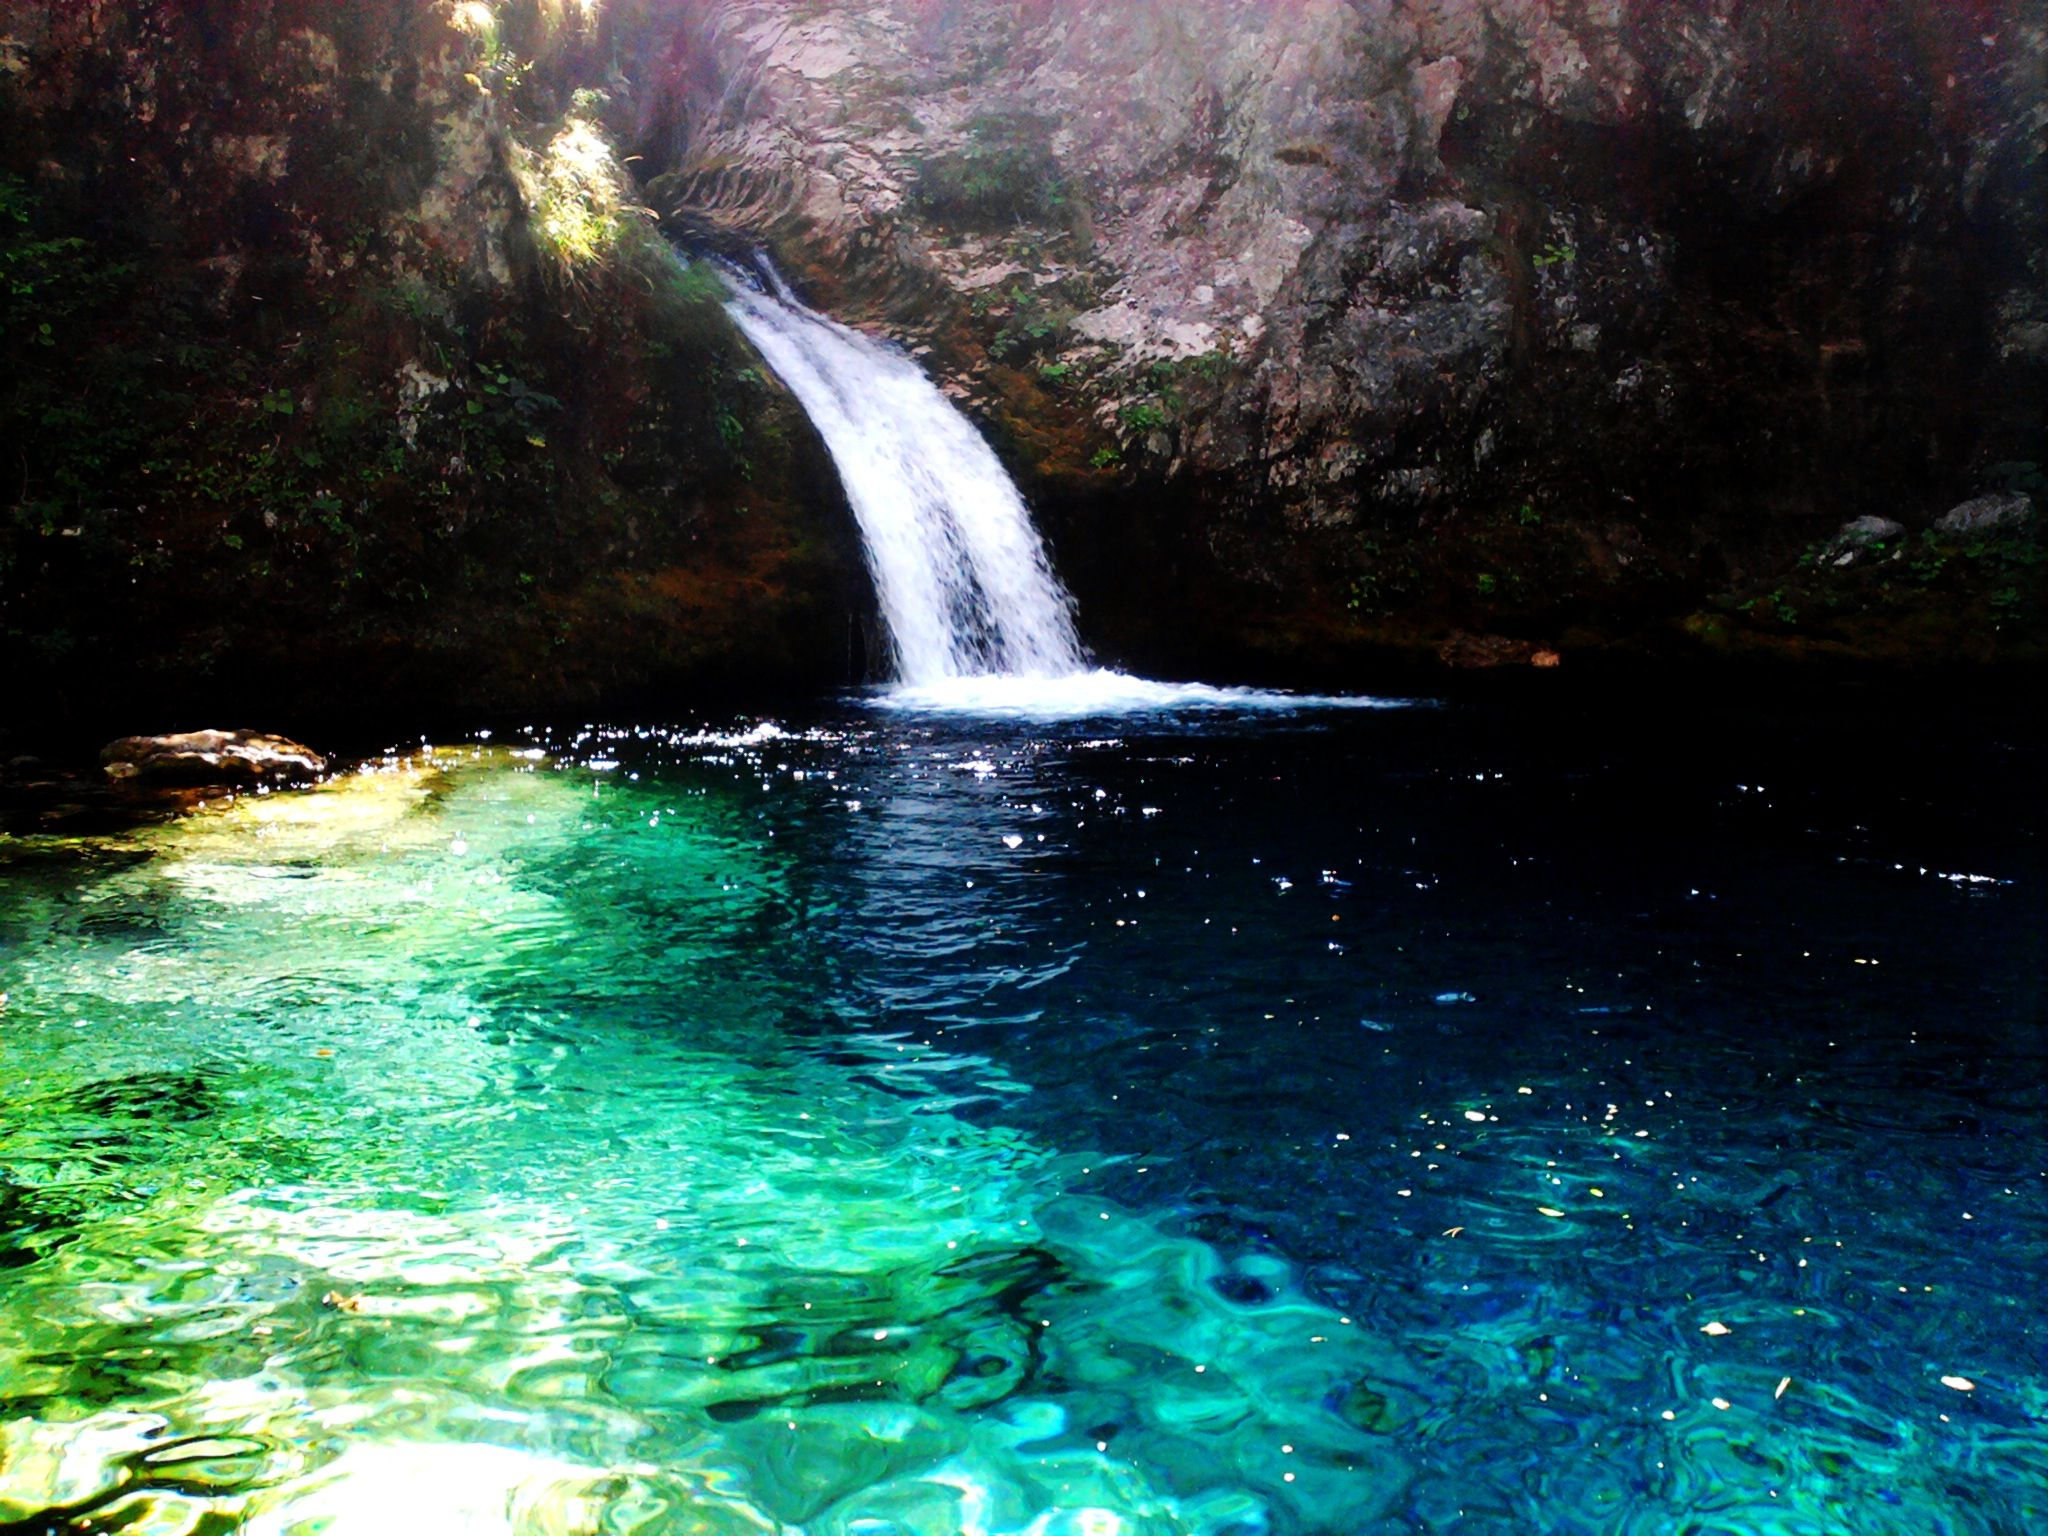 Theth Albania Syri I Kalter Places To Visit Water Waterfall